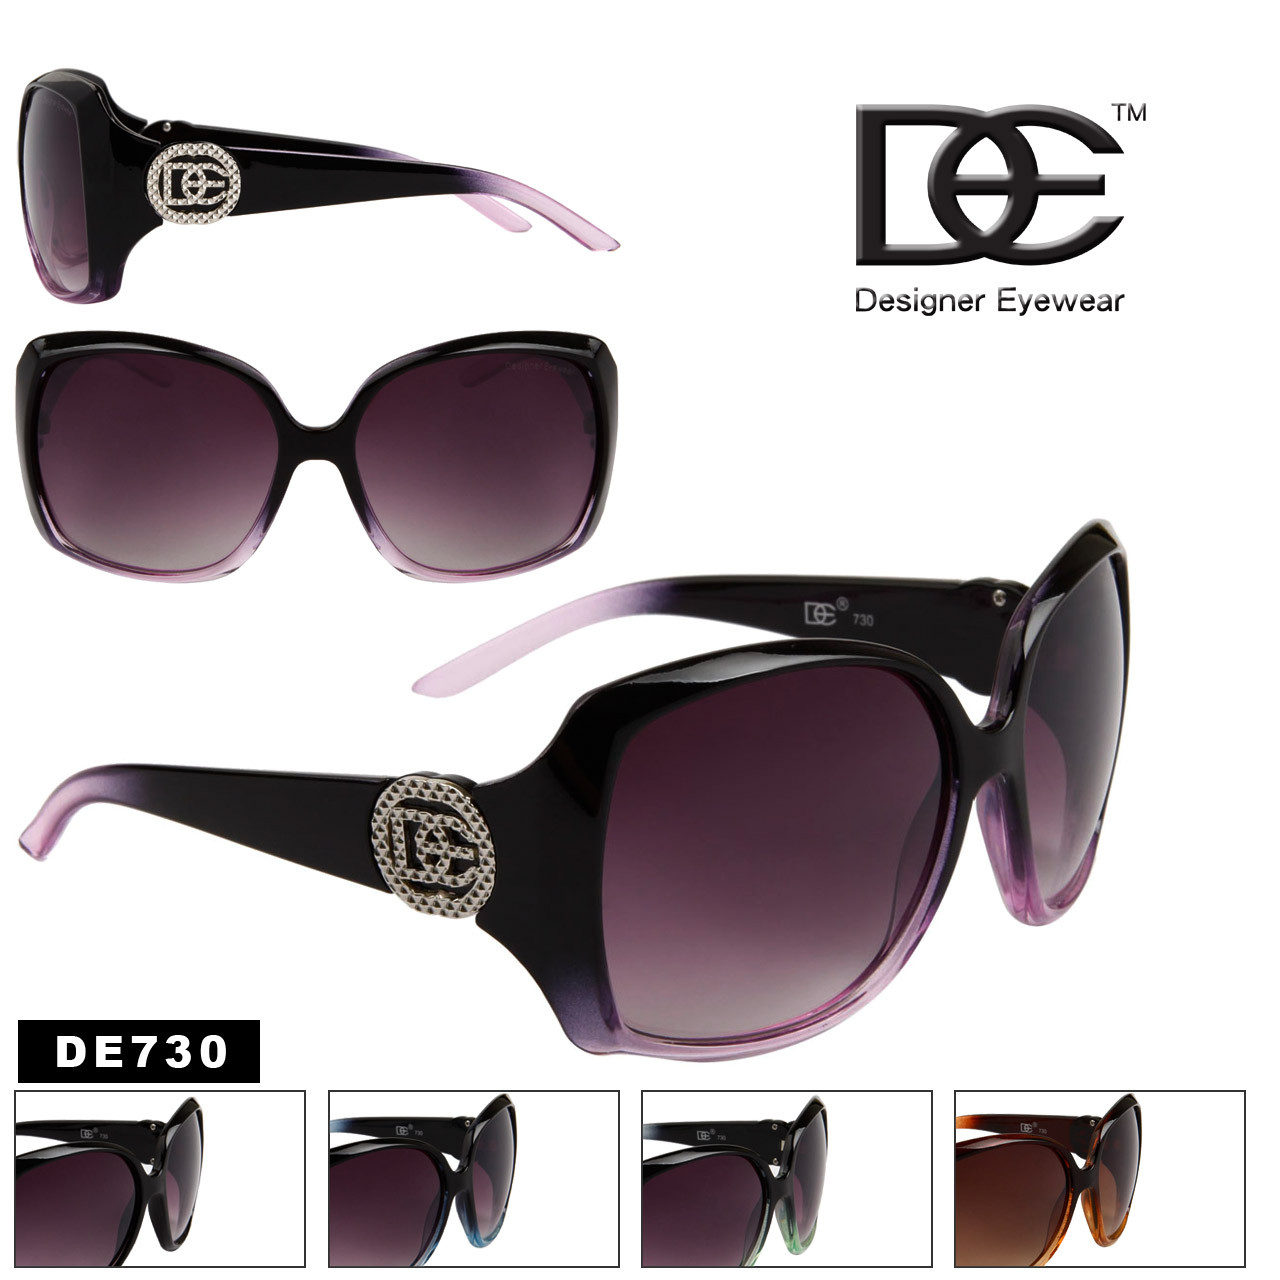 7fb88f3d82 Wholesale Designer Eyewear Sunglasses - Style   DE730 (12 pcs.)